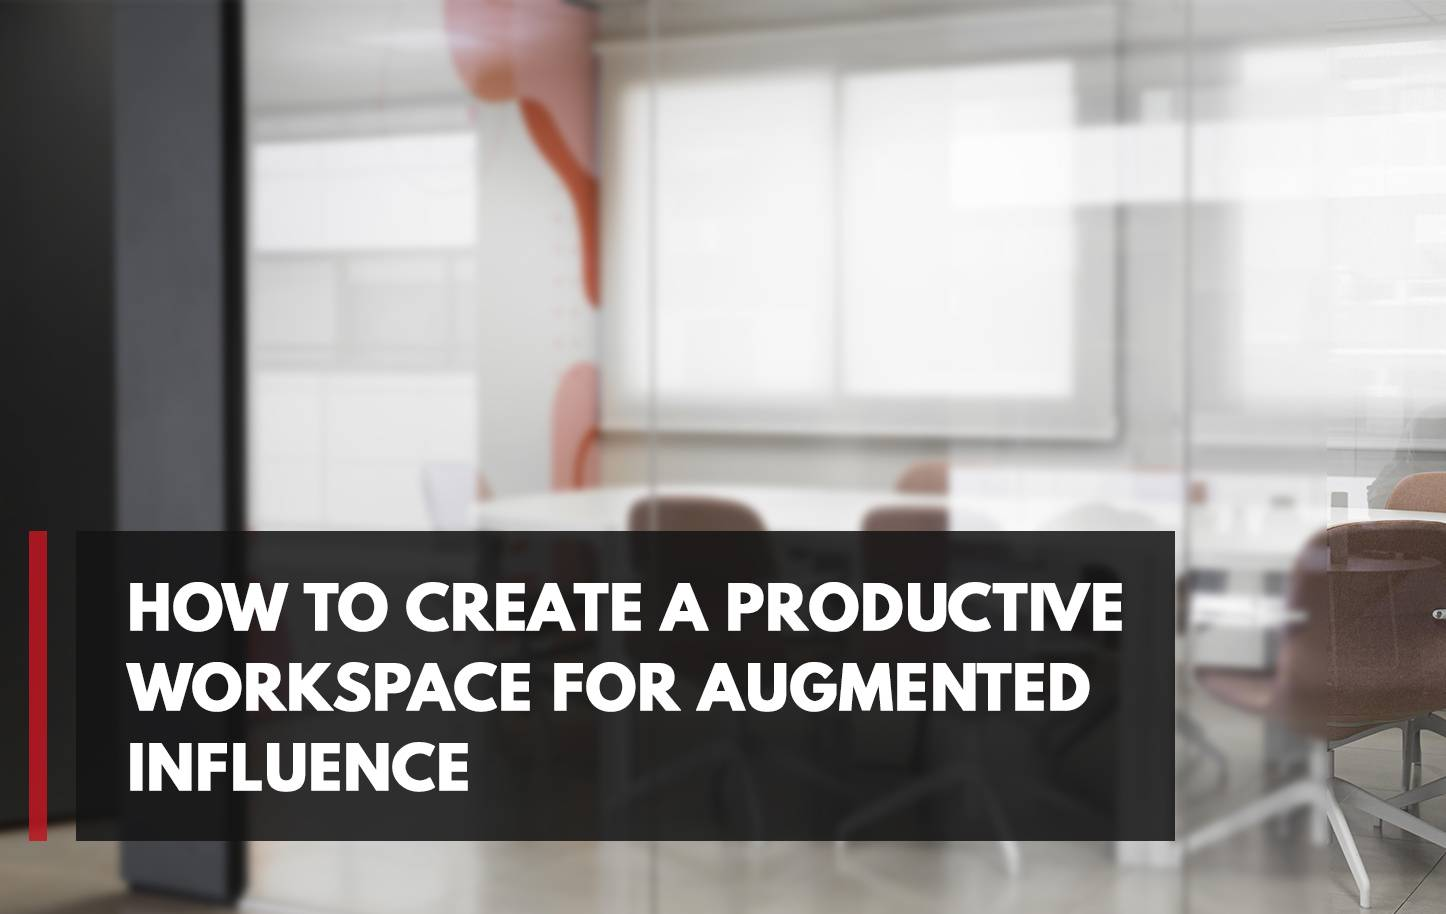 How to Create a Productive Workspace for Augmented Influence